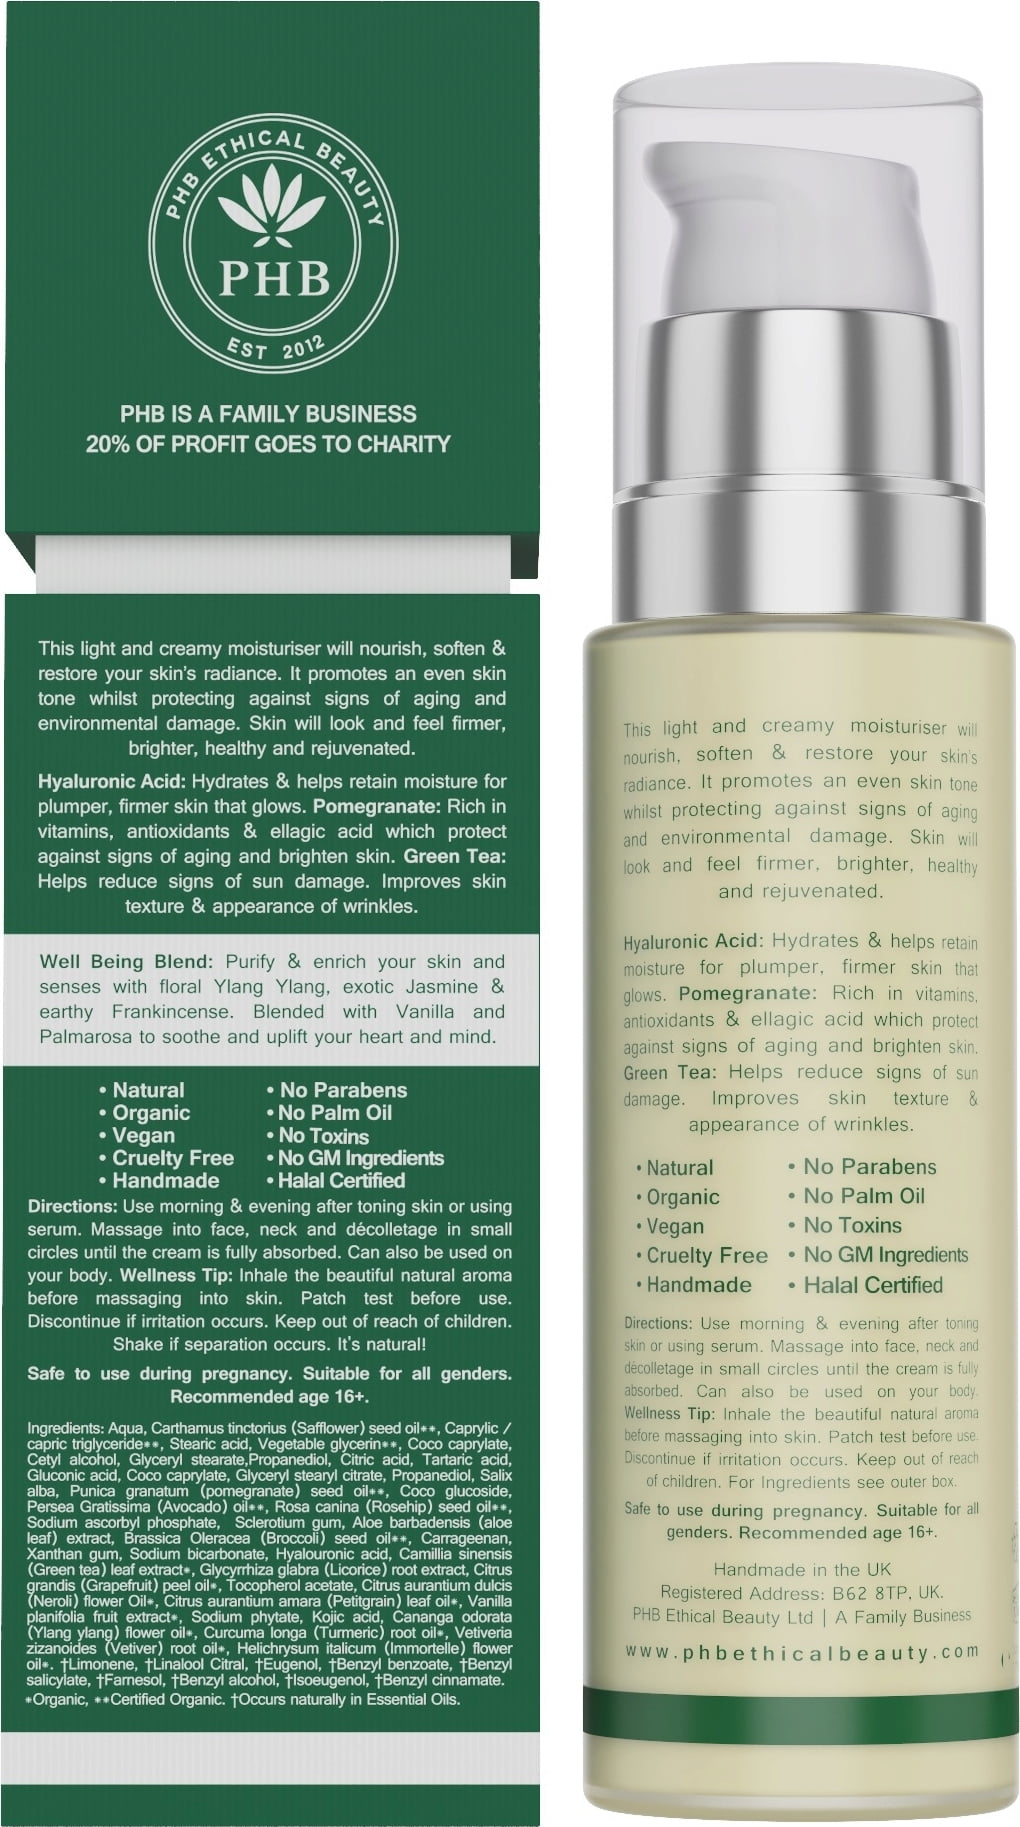 PHB Ethical Beauty Superfood Brightening Moisturiser